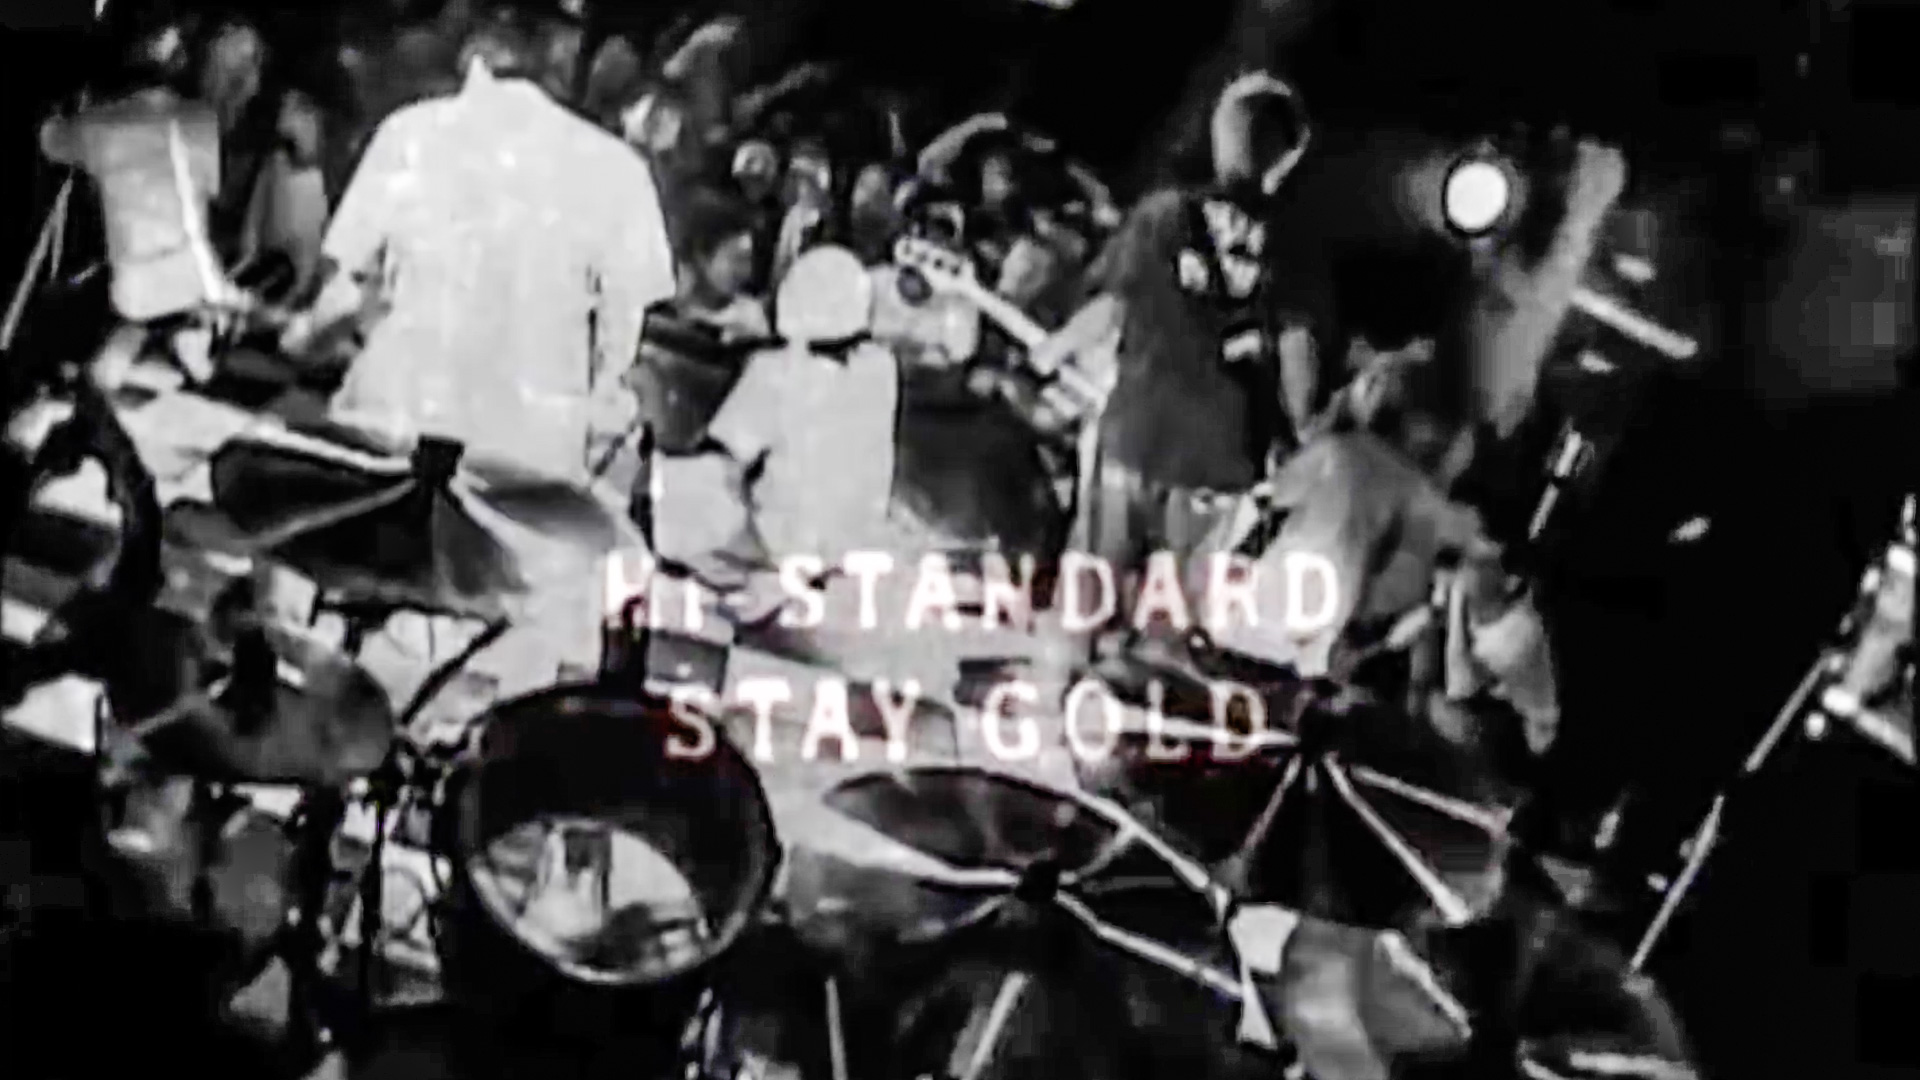 Stay Gold / Hi-STANDARD